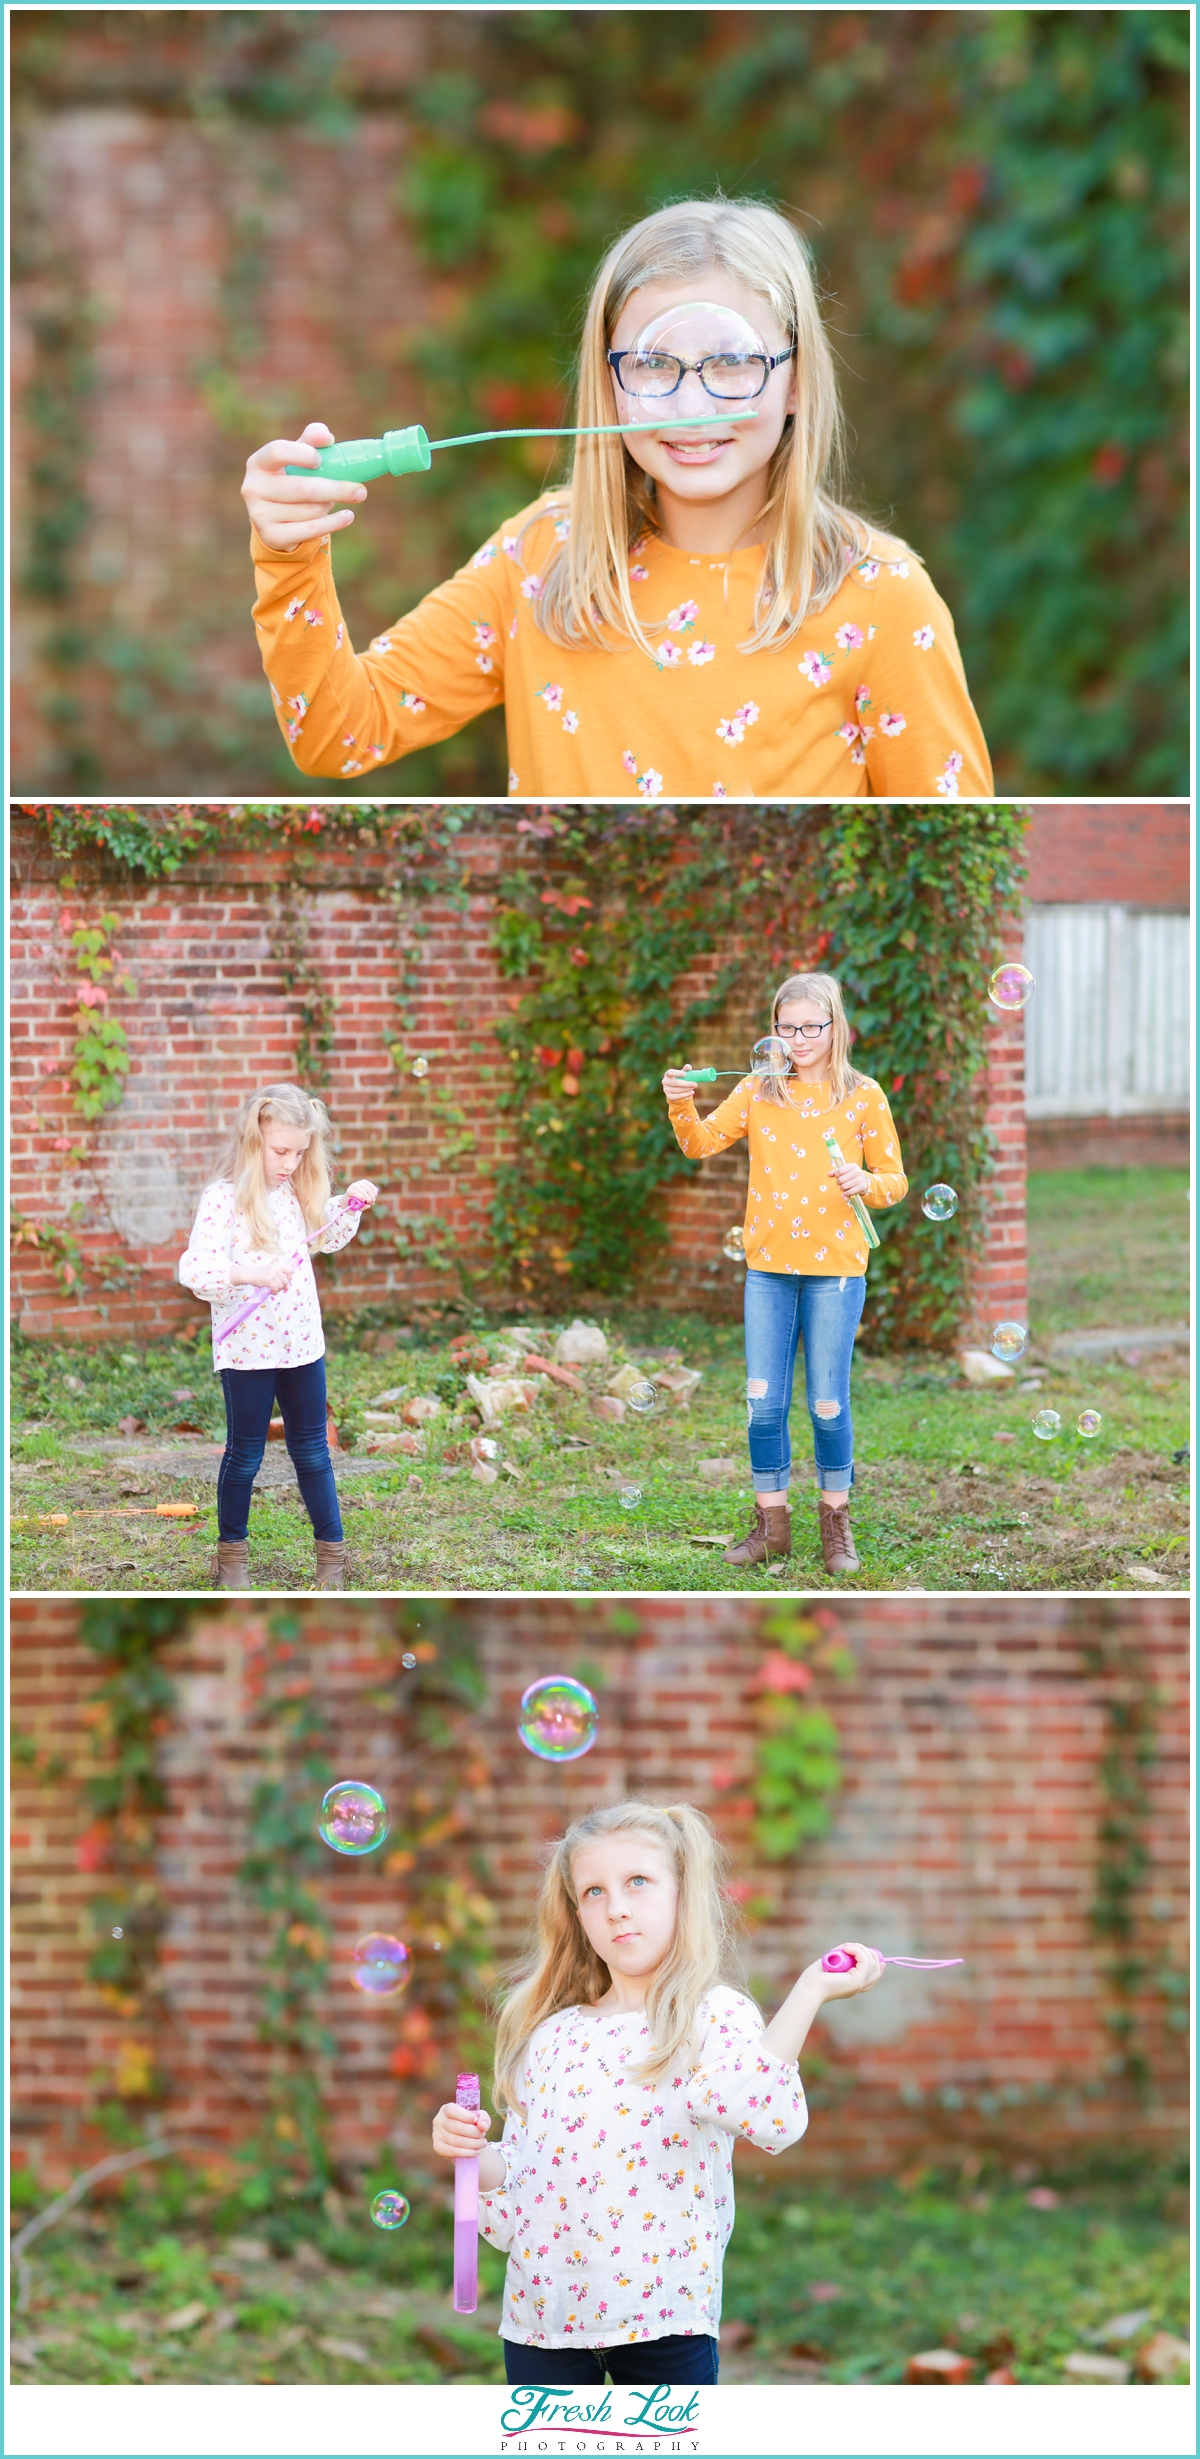 blowing bubbles at the photoshoot